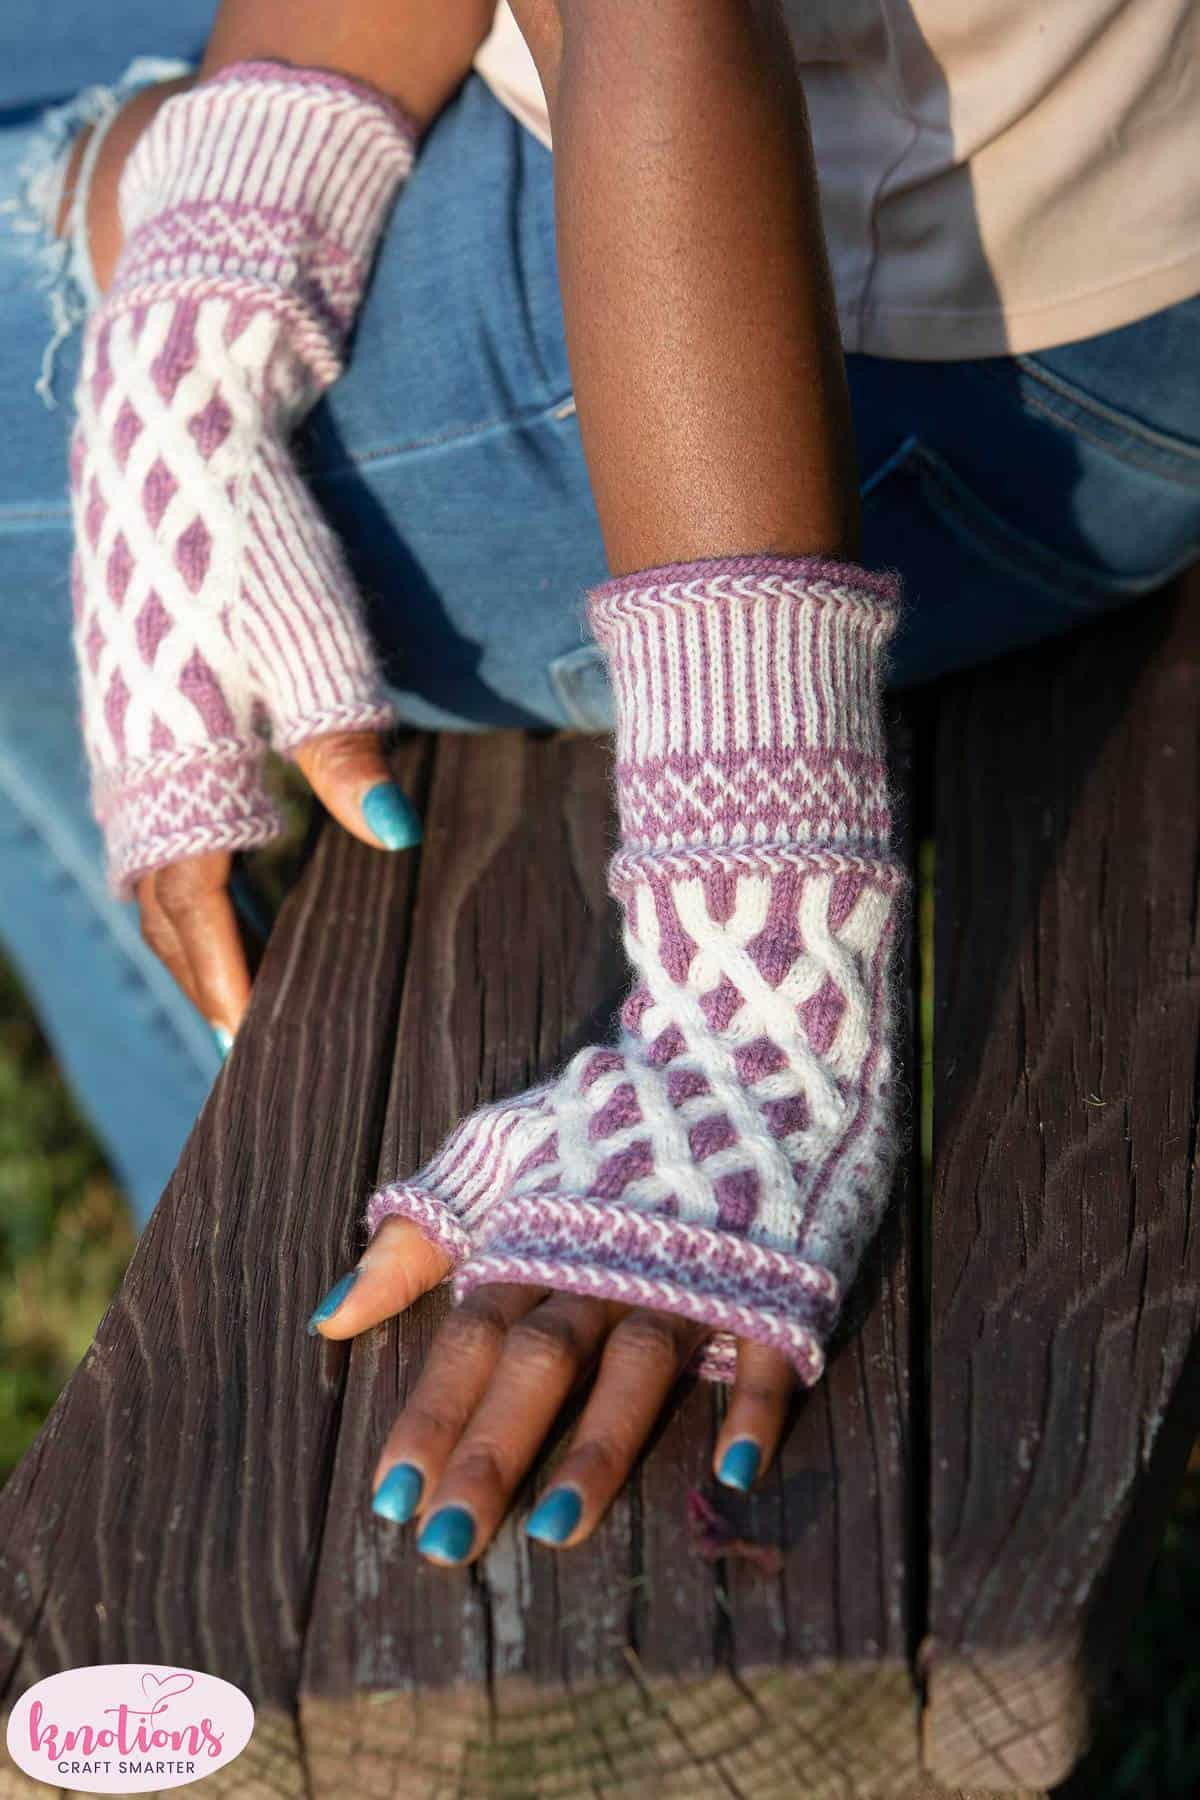 window-into-camelot-mitts-1